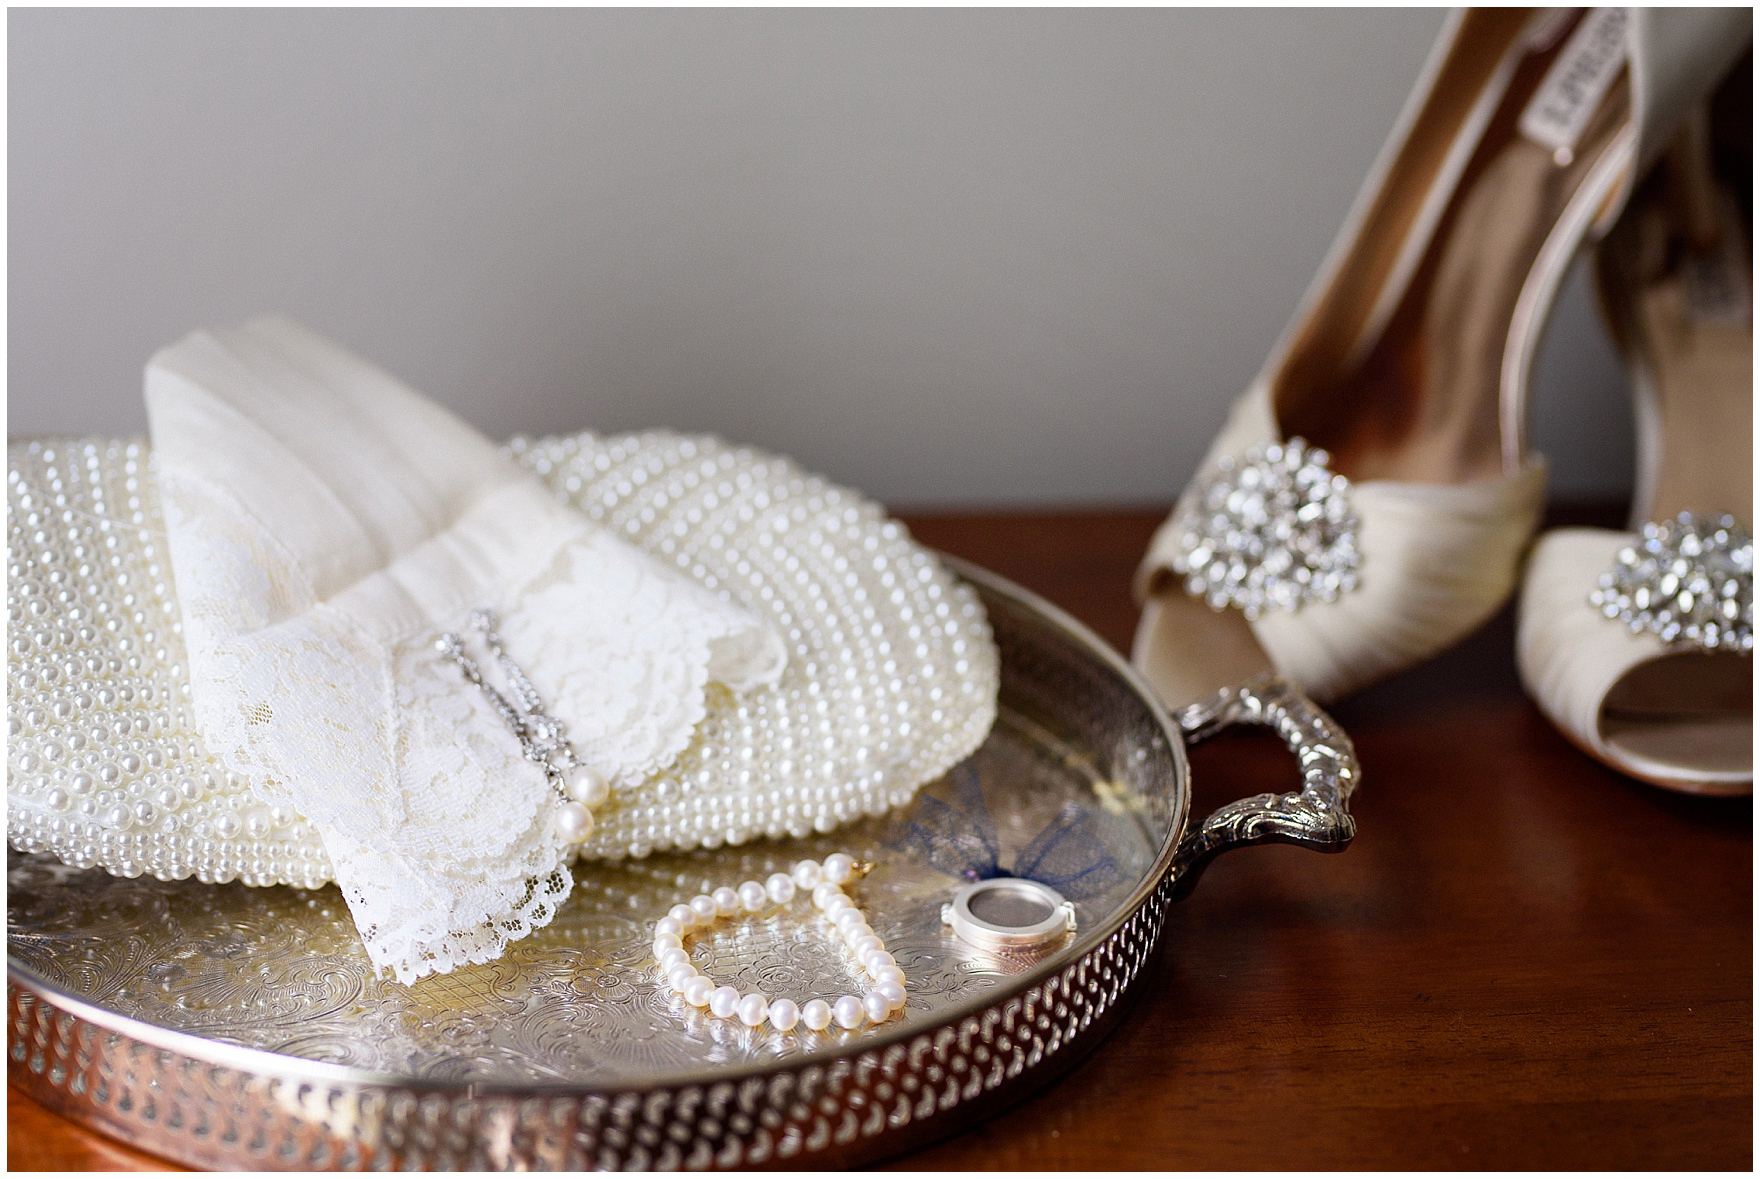 Details of a lace hankie and pearls photographed on a silver tray in the foyer of a classic home before a Biltmore Country Club Barrington wedding.